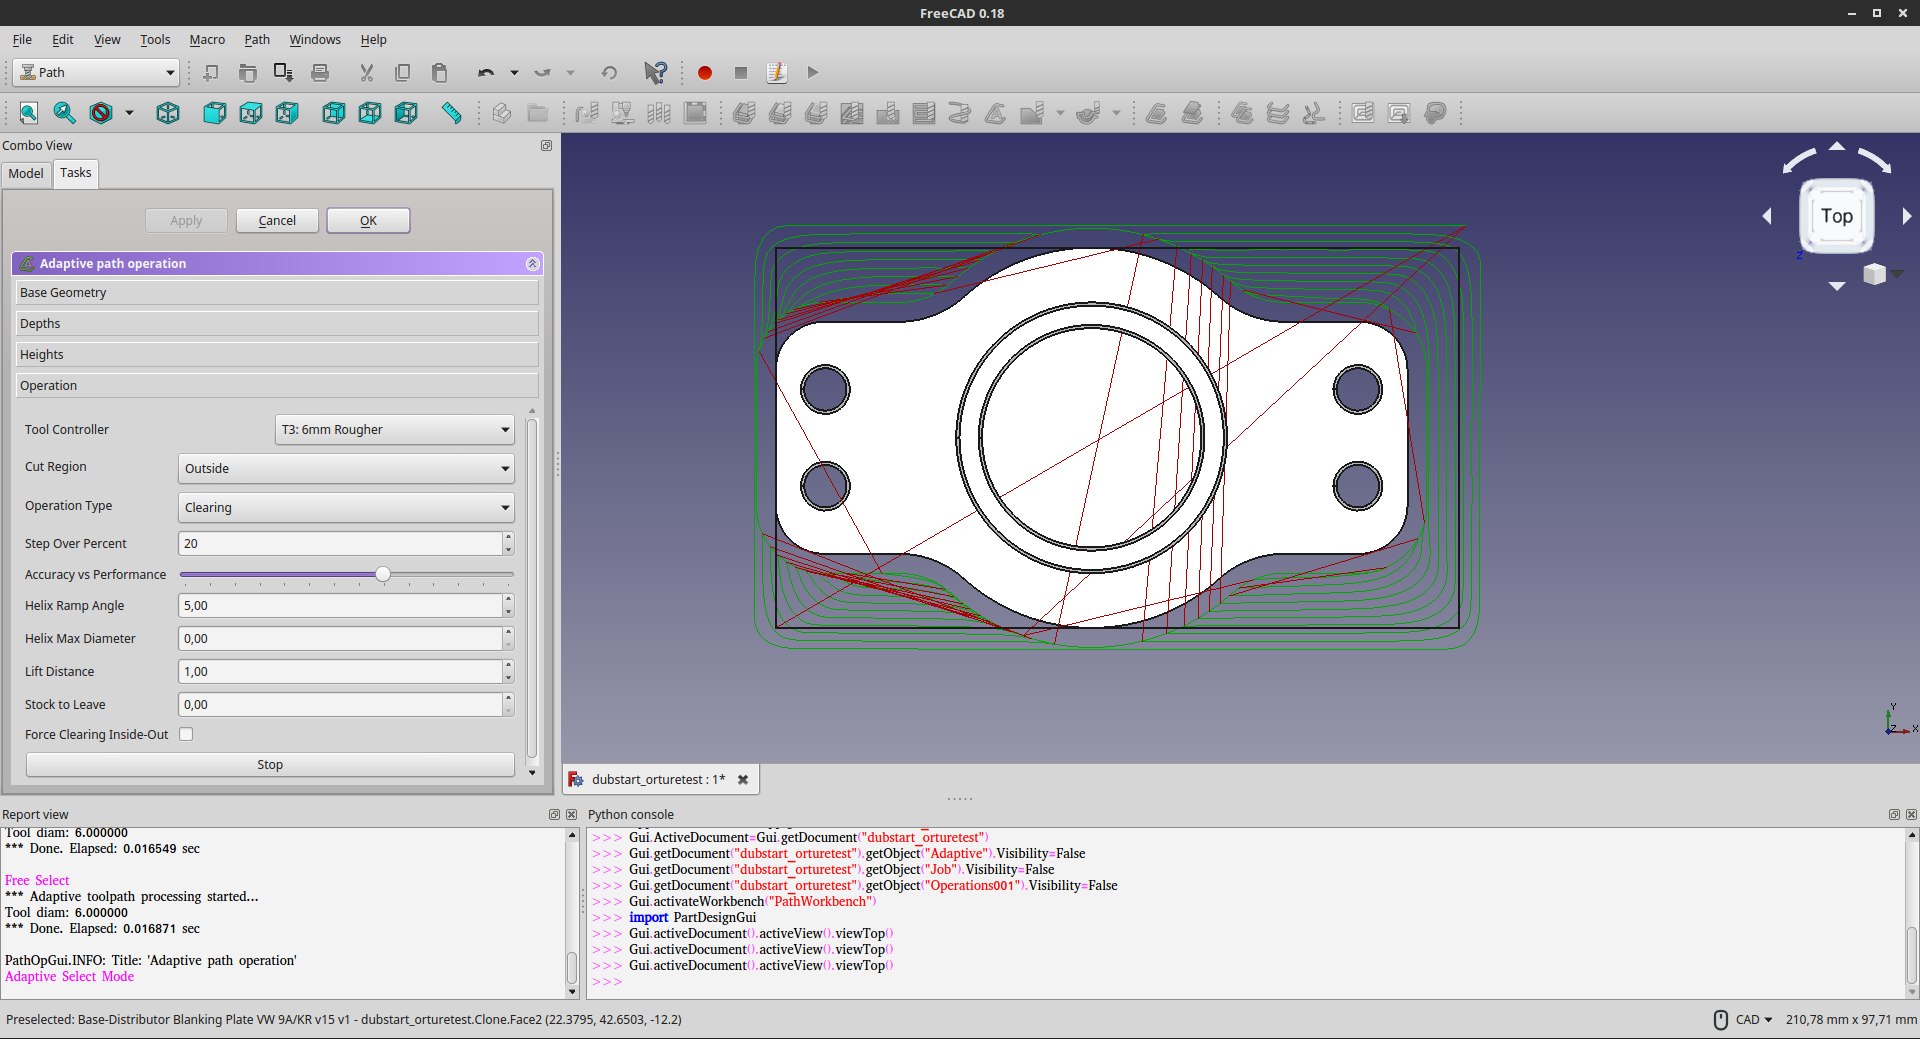 FreeCAD 0.18_032.png